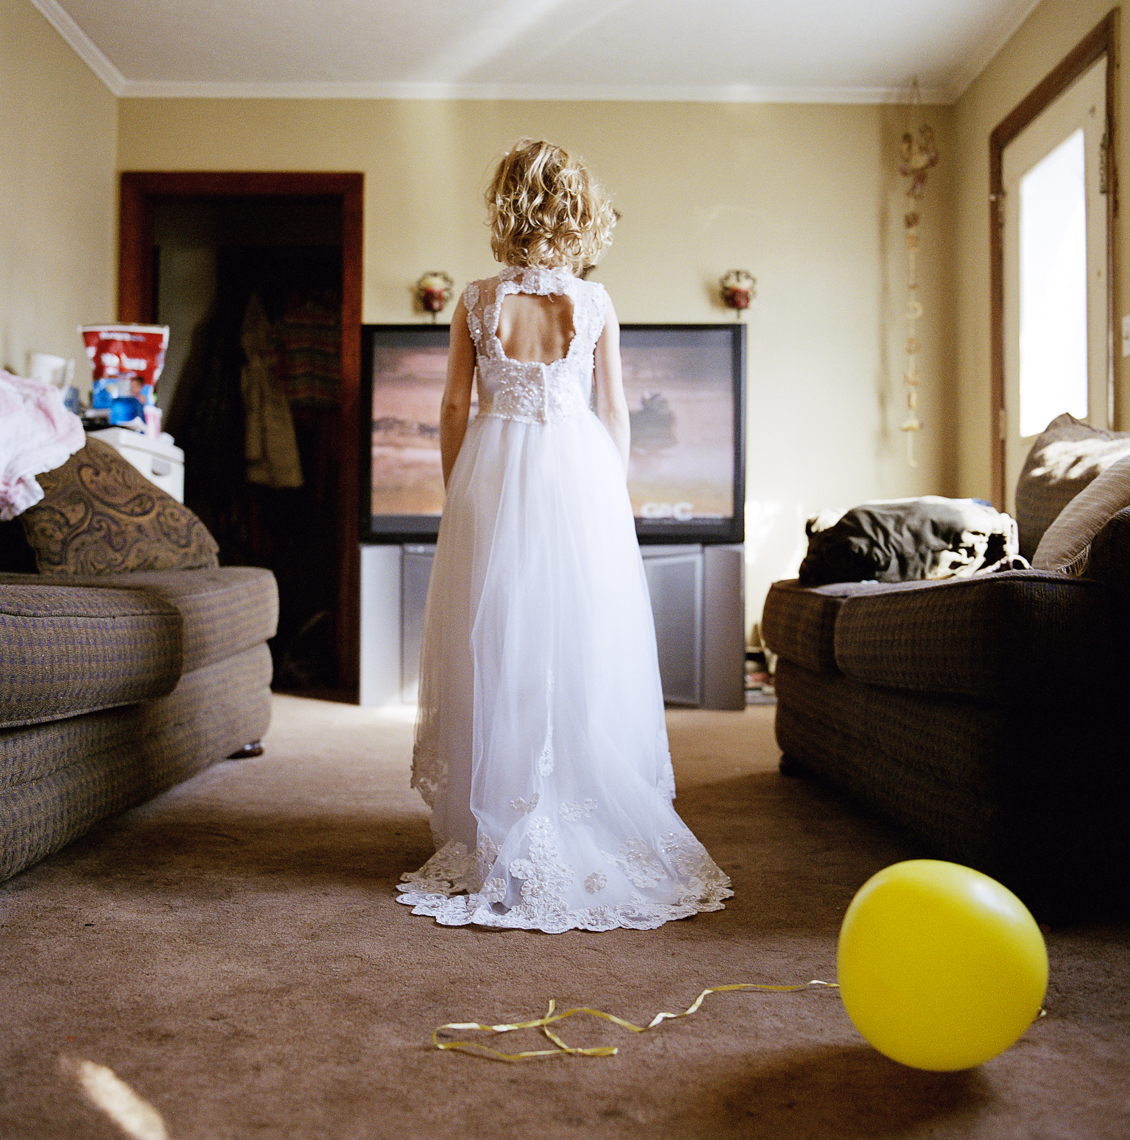 Young girl in a white gown with a yellow balloon watching country music videos in her living room, real people, Nashville editorial photographer, Documentary, day in the life, reportage, travel, cause marketing, non-profit, food, beverage, photographer, photojournalist, journalist, pictures, photos, photographs, photo, journalist, Austin, Mississippi, Louisiana, New Orleans, Carbondale, Chattanooga, Washington DC, Louisville, Lexington, Johnson City, Knoxville, Asheville, NC, North Carolina, Memphis, Tennessee, TN, Atlanta, Athens, Savannah, Georgia, GA, Chicago, Illinois, Southeast, Midwest, St. Louis, Missouri, Indiana, Indianapolis, Cincinnati, Little Rock, Arkansas, AK, portrait, freelancer, freelance